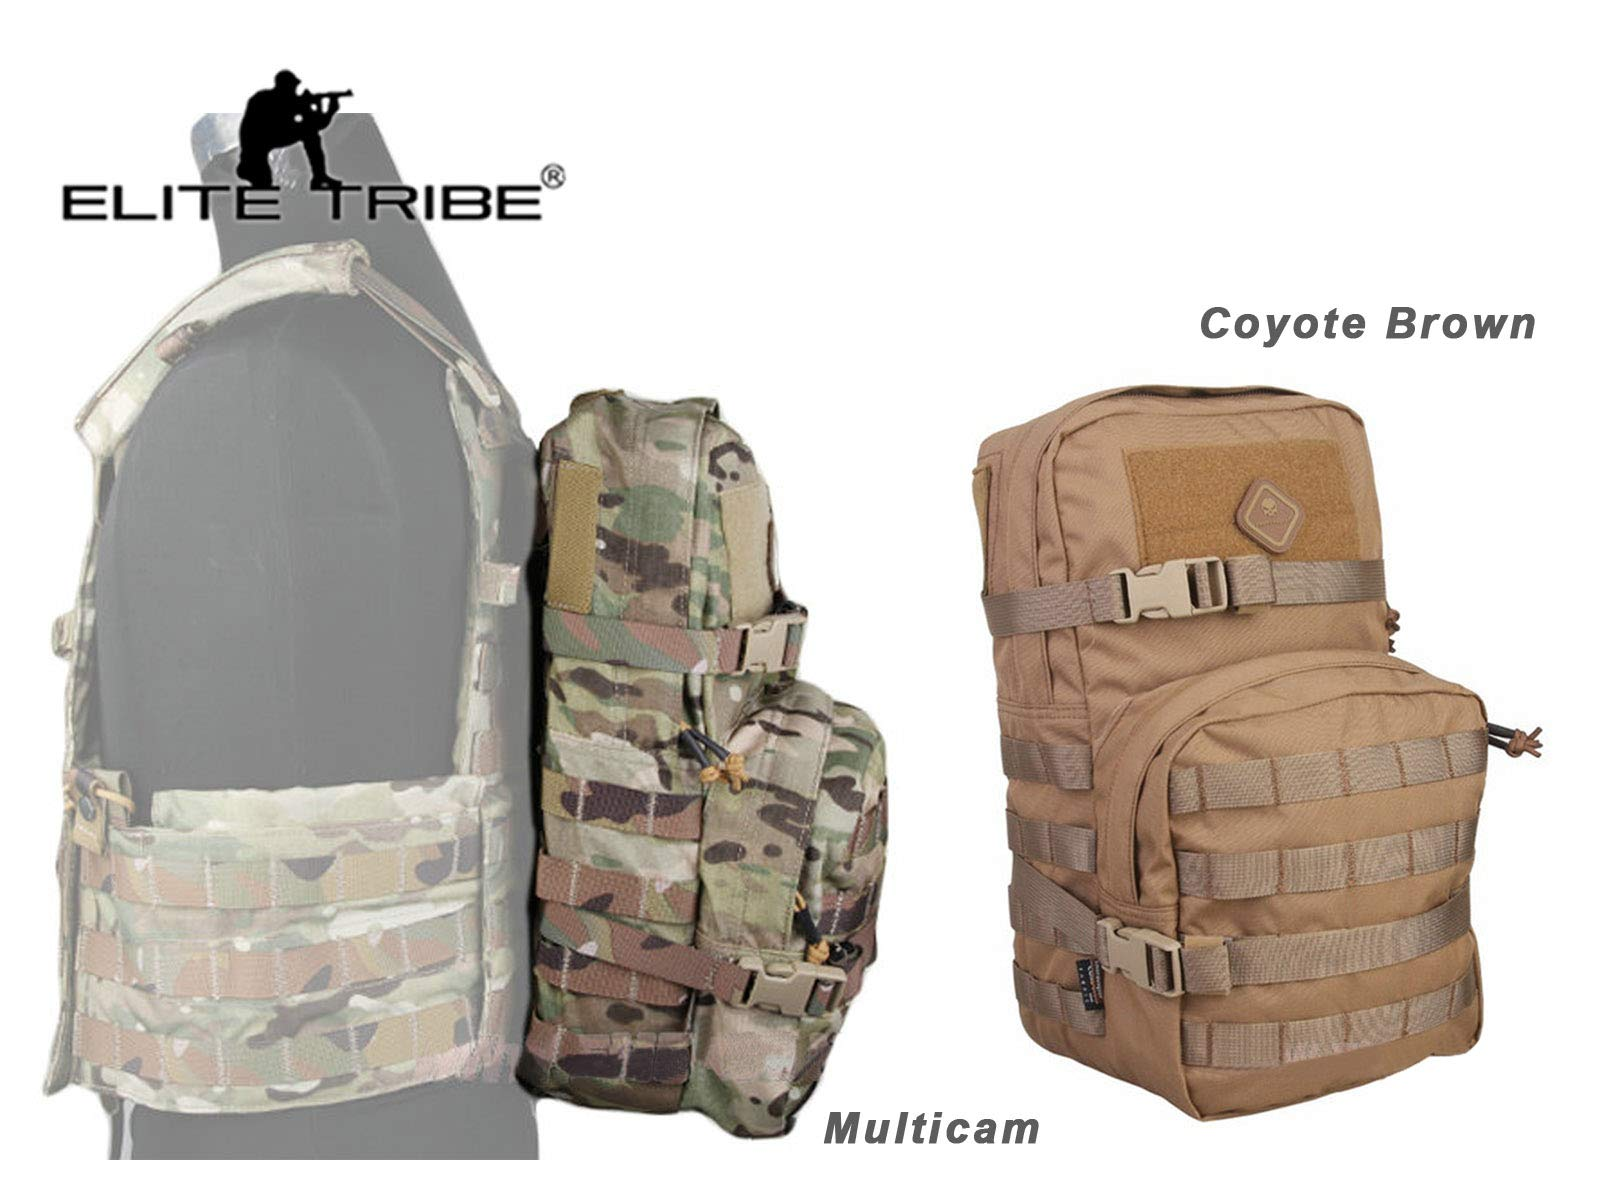 Elite Tribe Modular Pack 2.5L Hydration Pack Bag Molle Backpack for Military (Coyote Brown)